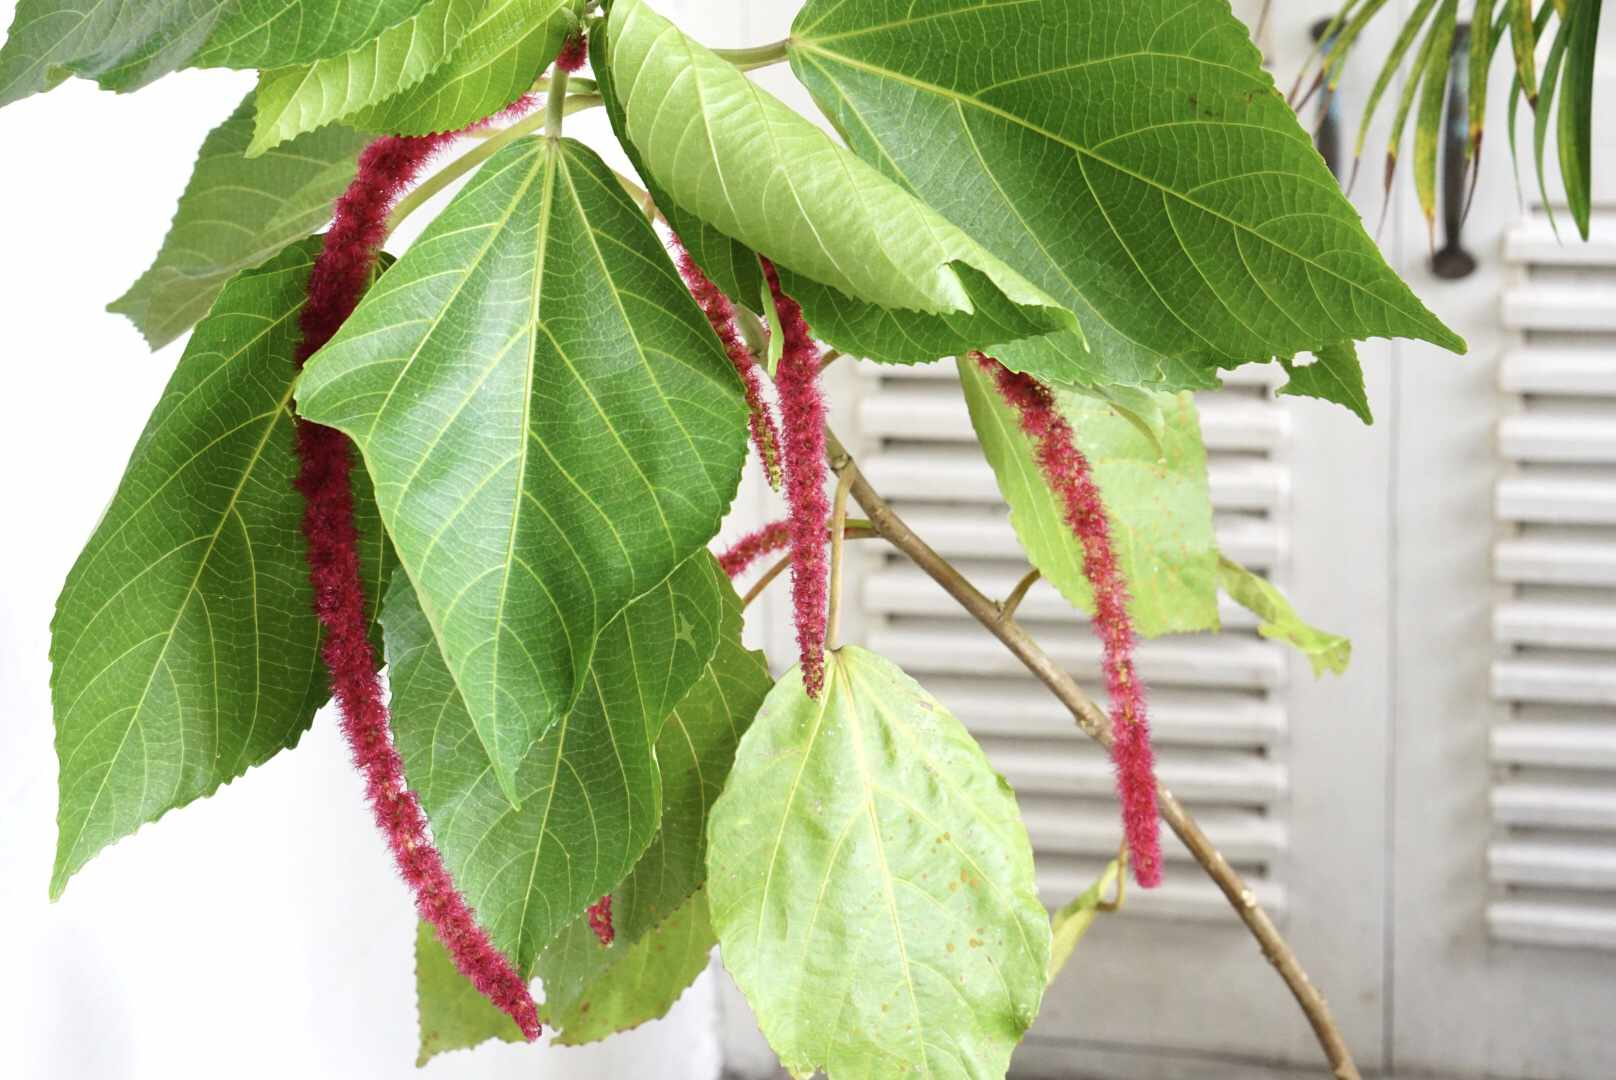 Acalypha plant with large leaves and red bottle brush-like flowers hanging